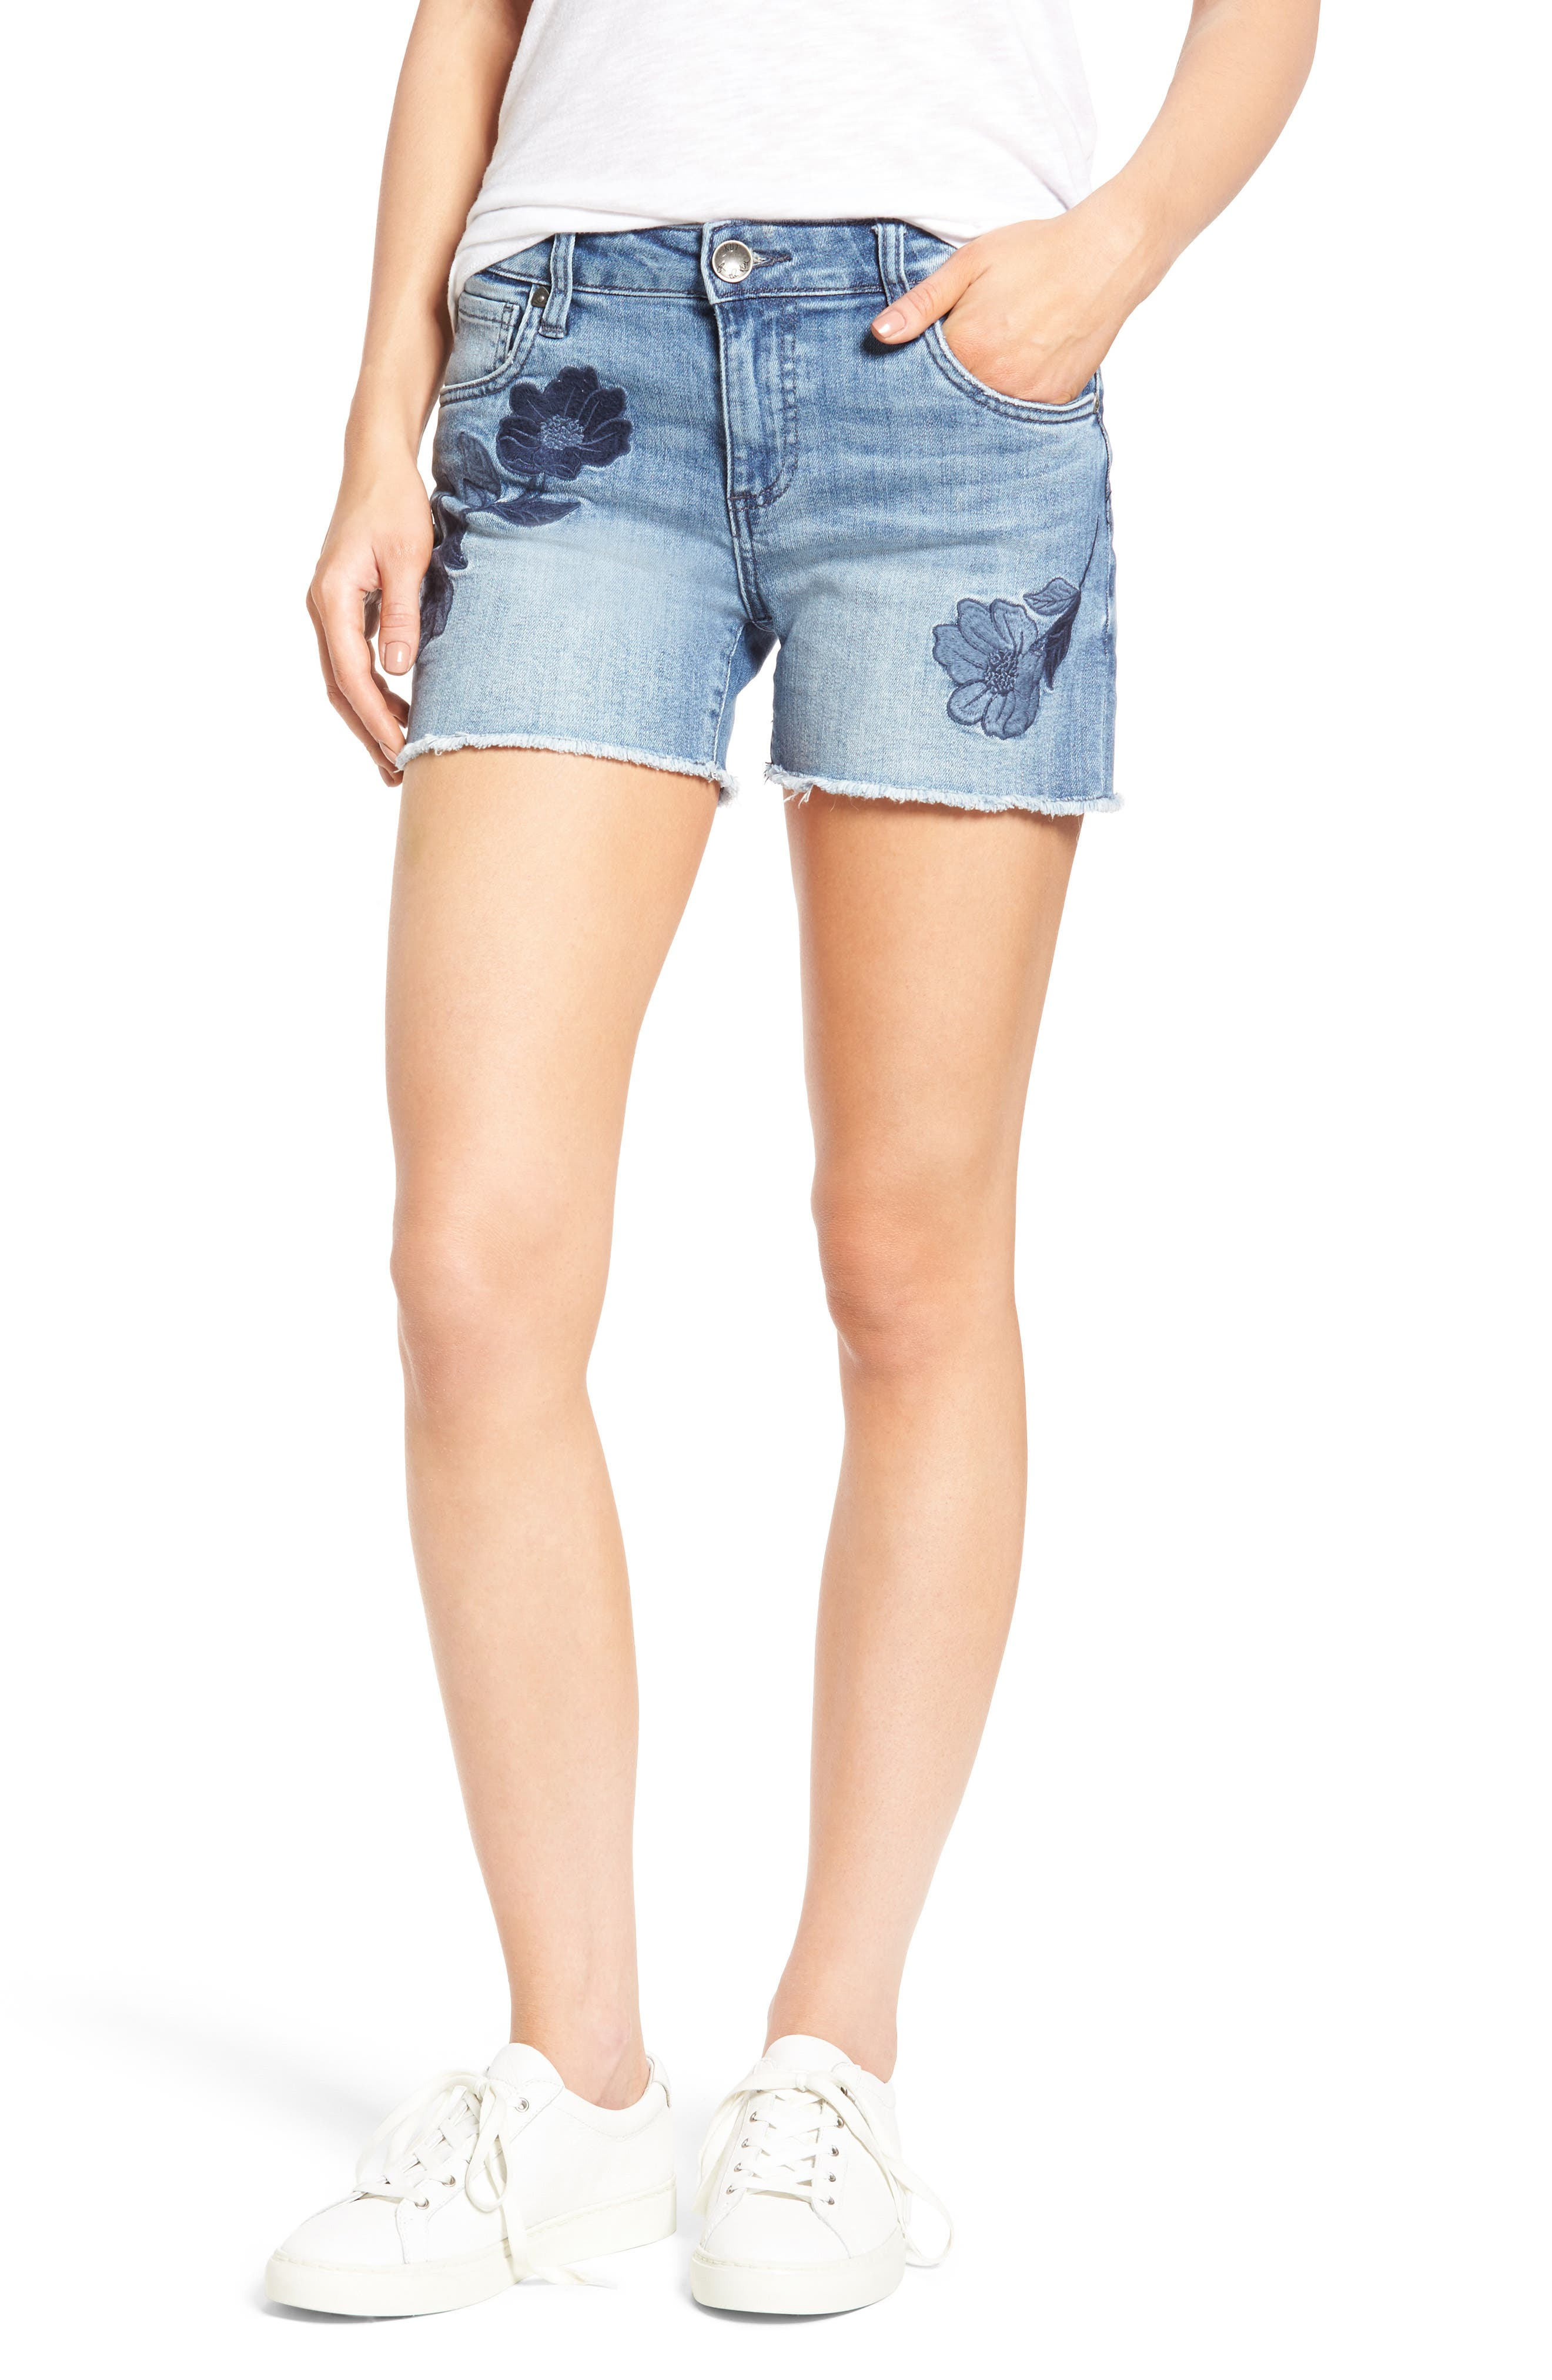 KUT from the Kloth Gidget Embroidered Denim Cutoff Shorts